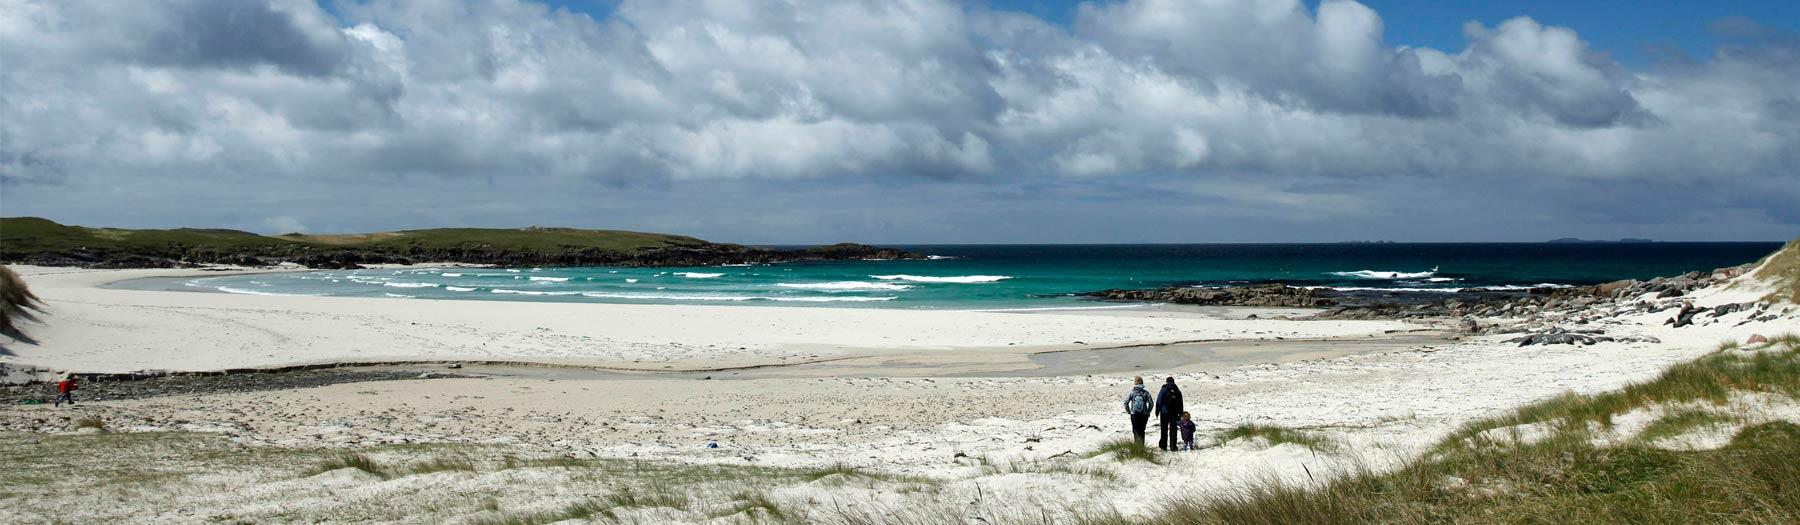 Image: Stornoway, Isle of Lewis. Credit: Image used with permission from VisitScotland and Scottish Viewpoint.